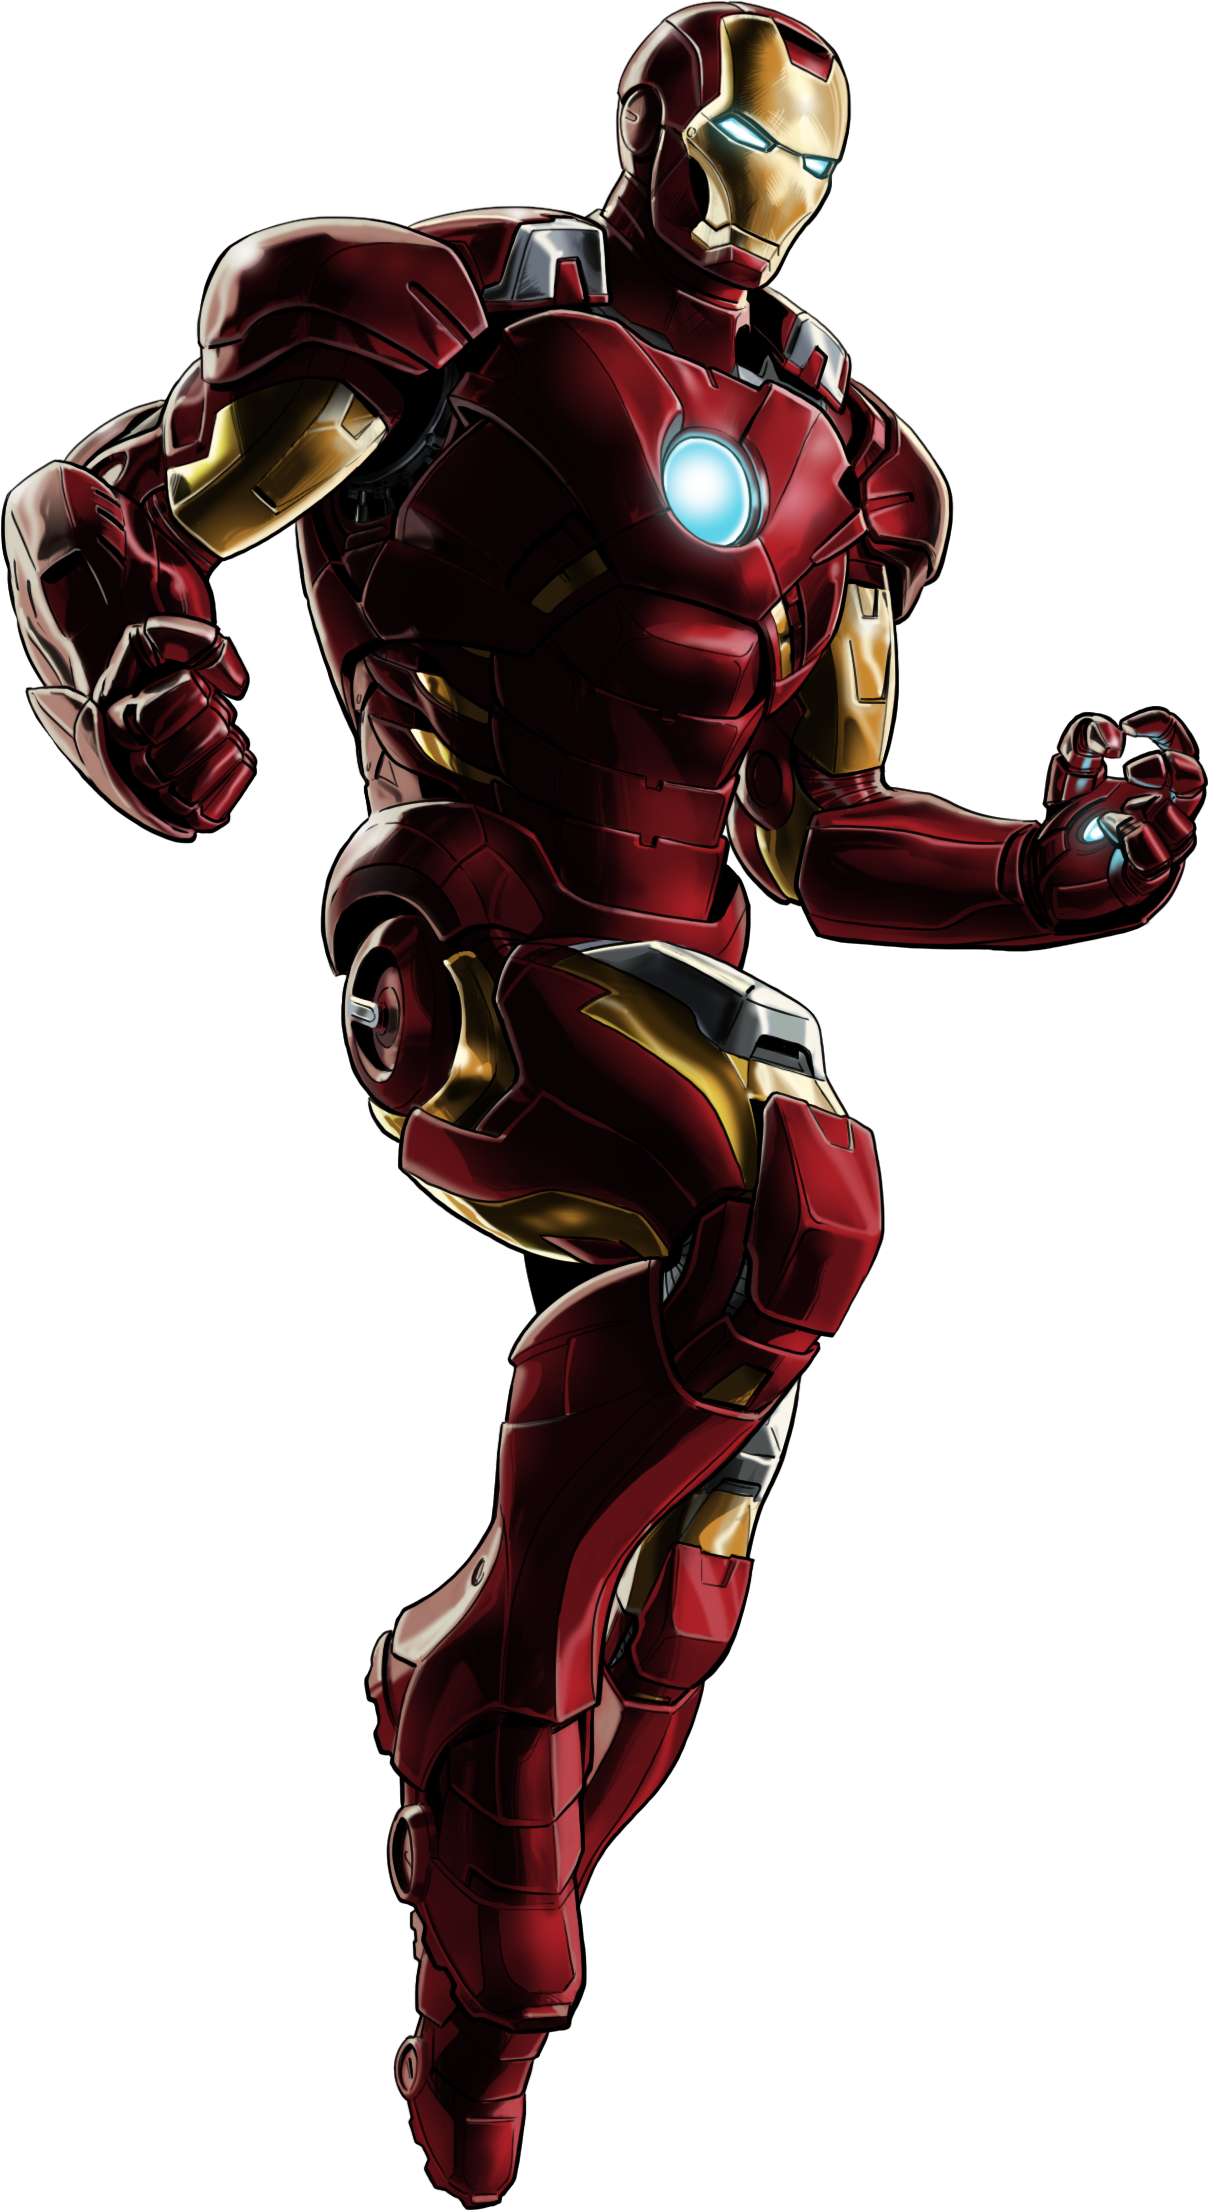 download iron image png #8715